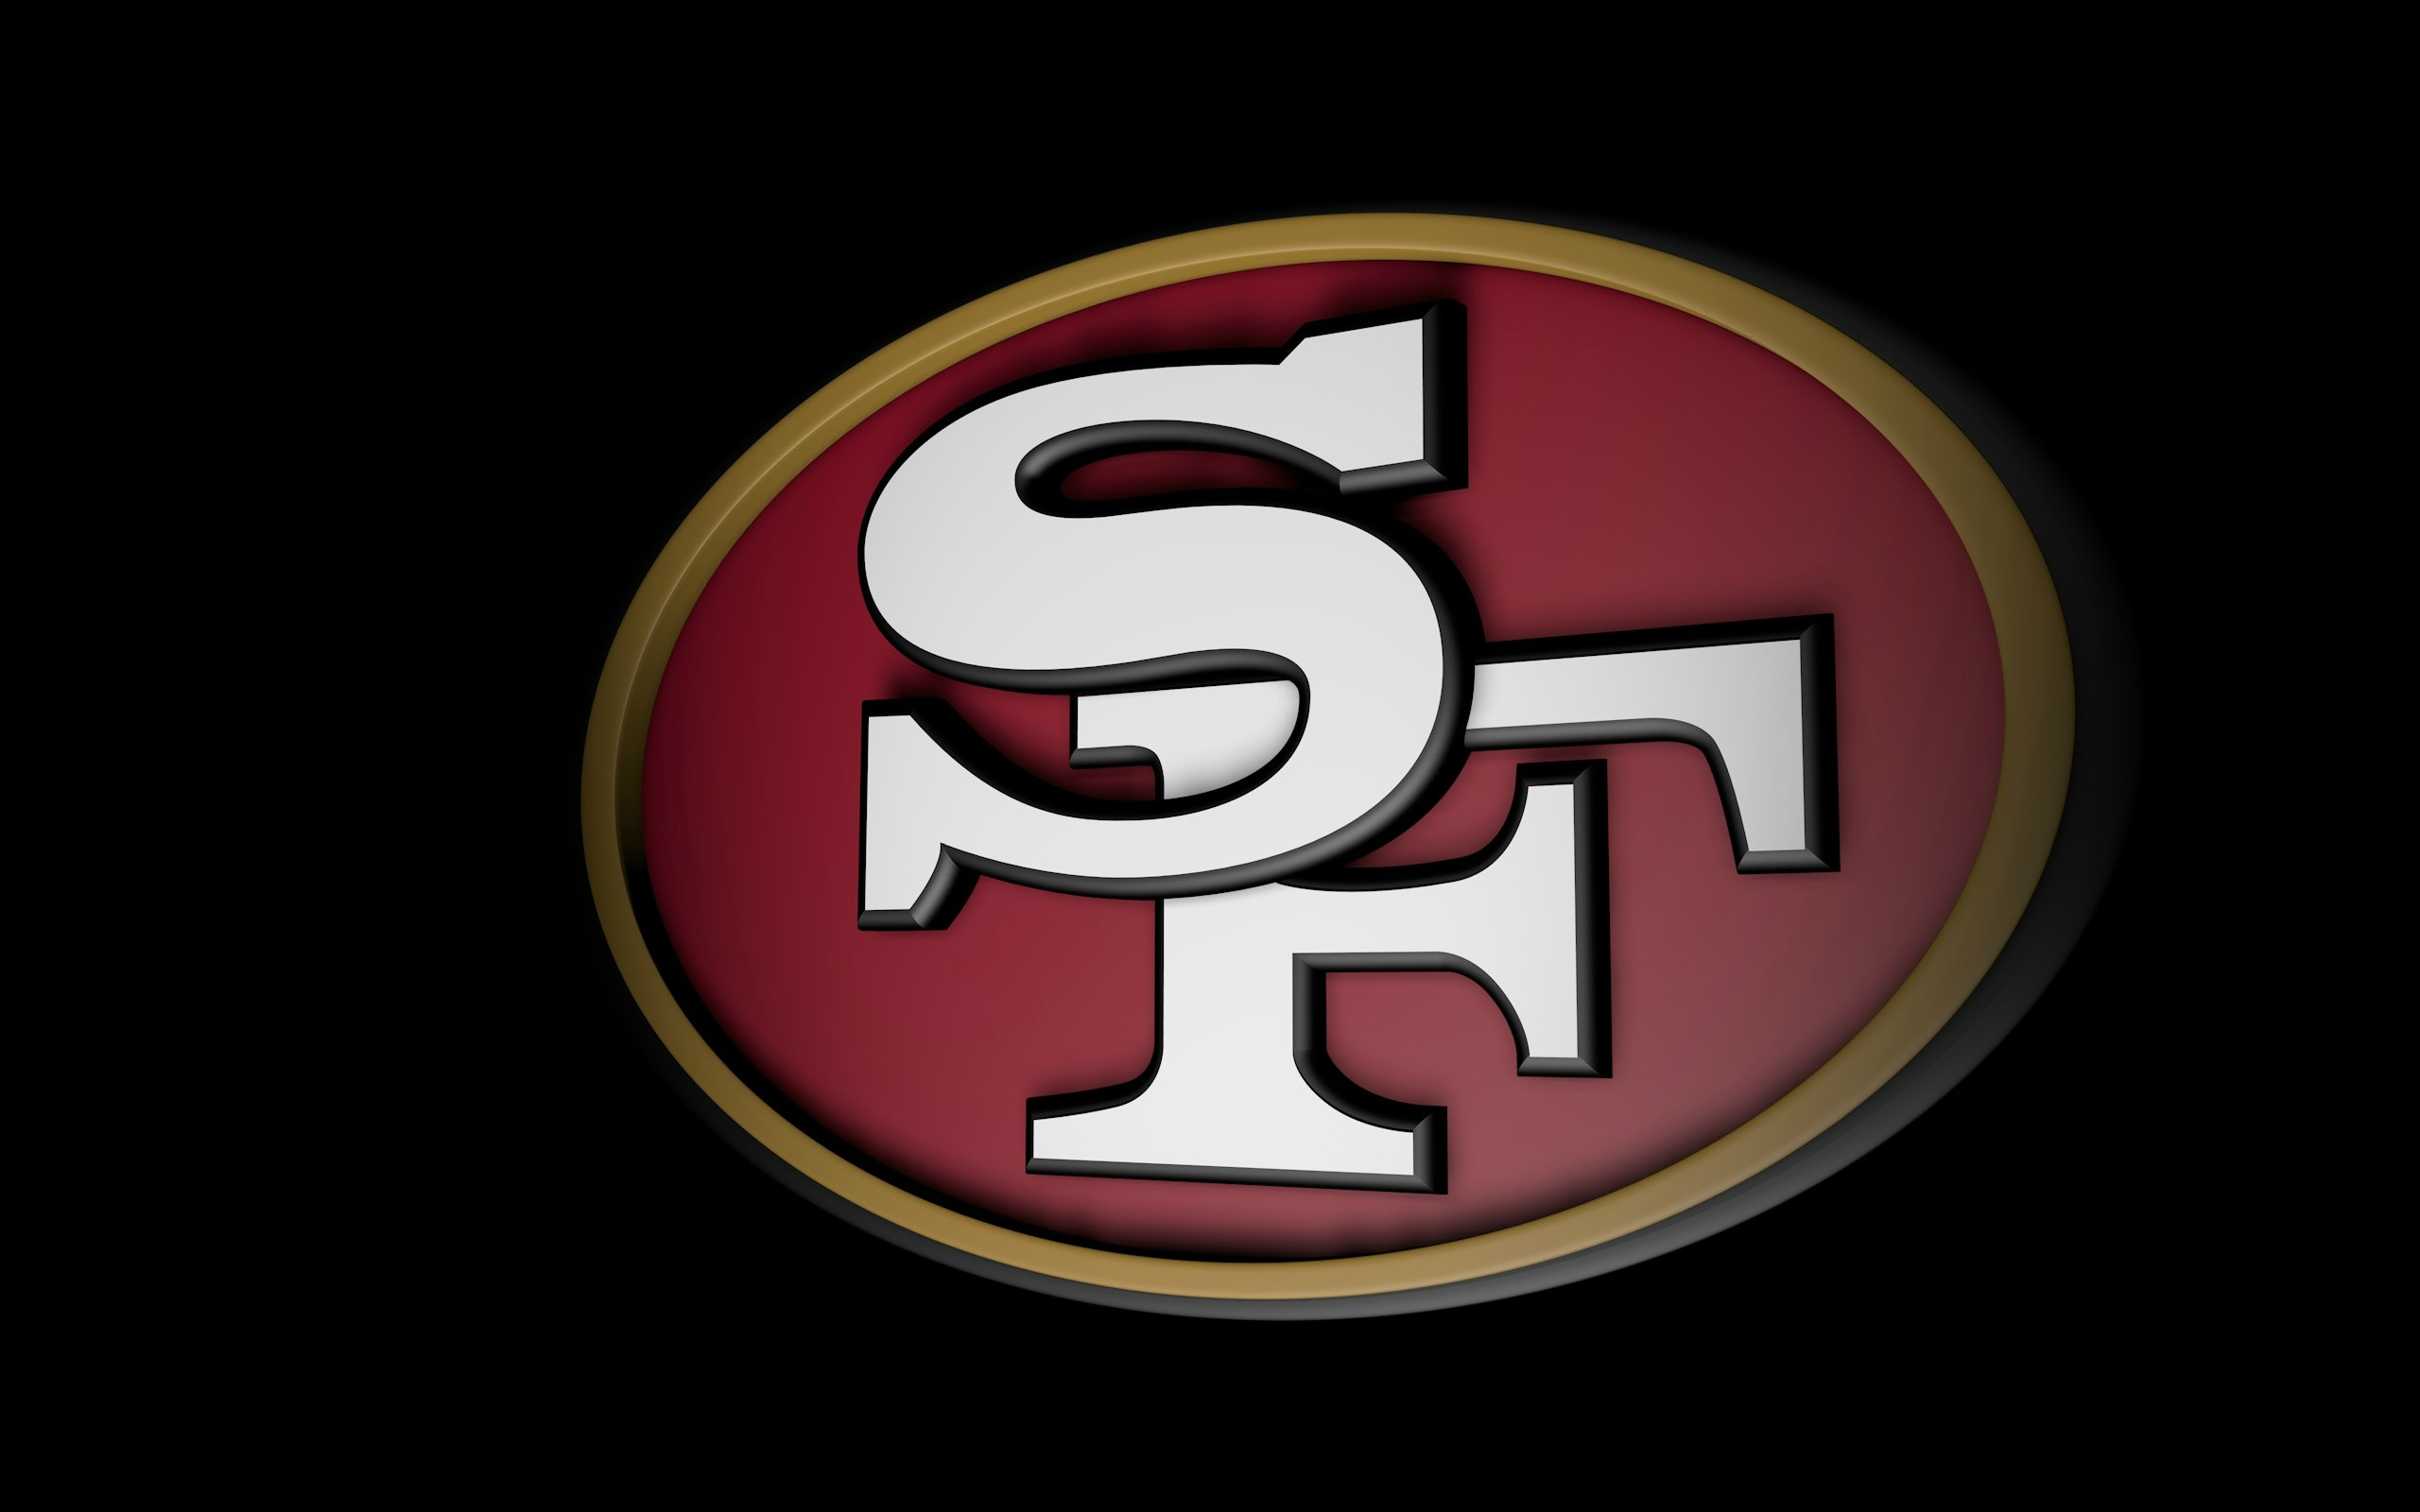 2011 NEW 49ers Graphics   Photoshop   Wallpapers   Schedules Page 3 2560x1600